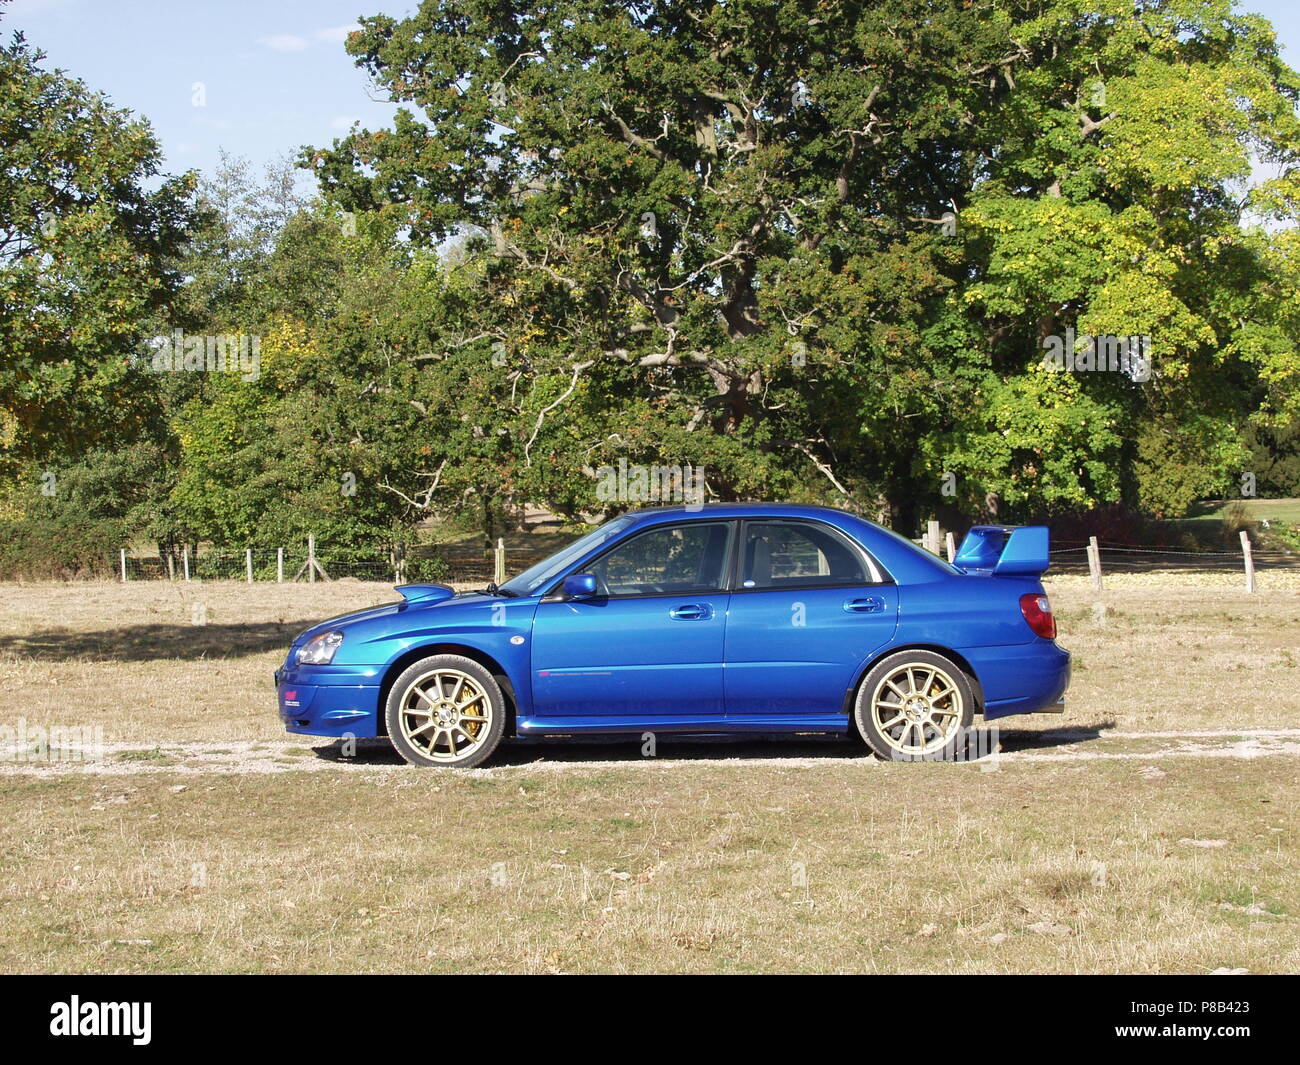 Wrx Stock Photos Images Alamy Blue Sti With White Rims Subaru Impreza In Wr Pearl Colour Alloy Wheels Showing Side Profile